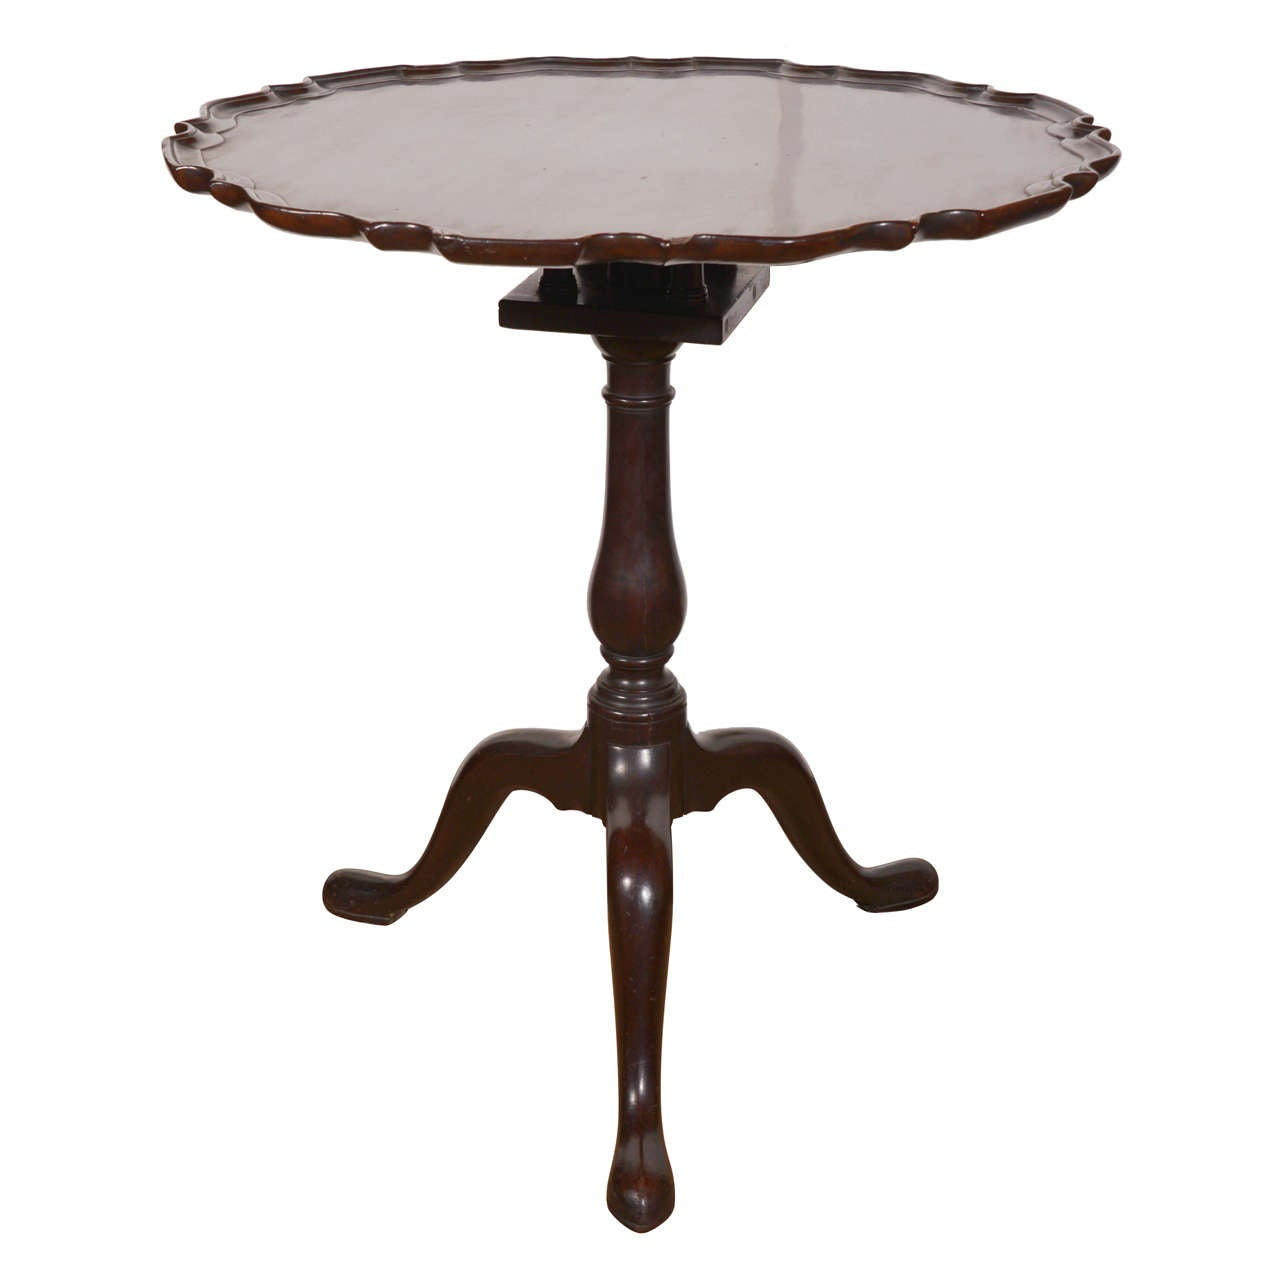 George II Mahogany Piecrust Tilt-top Tea Table